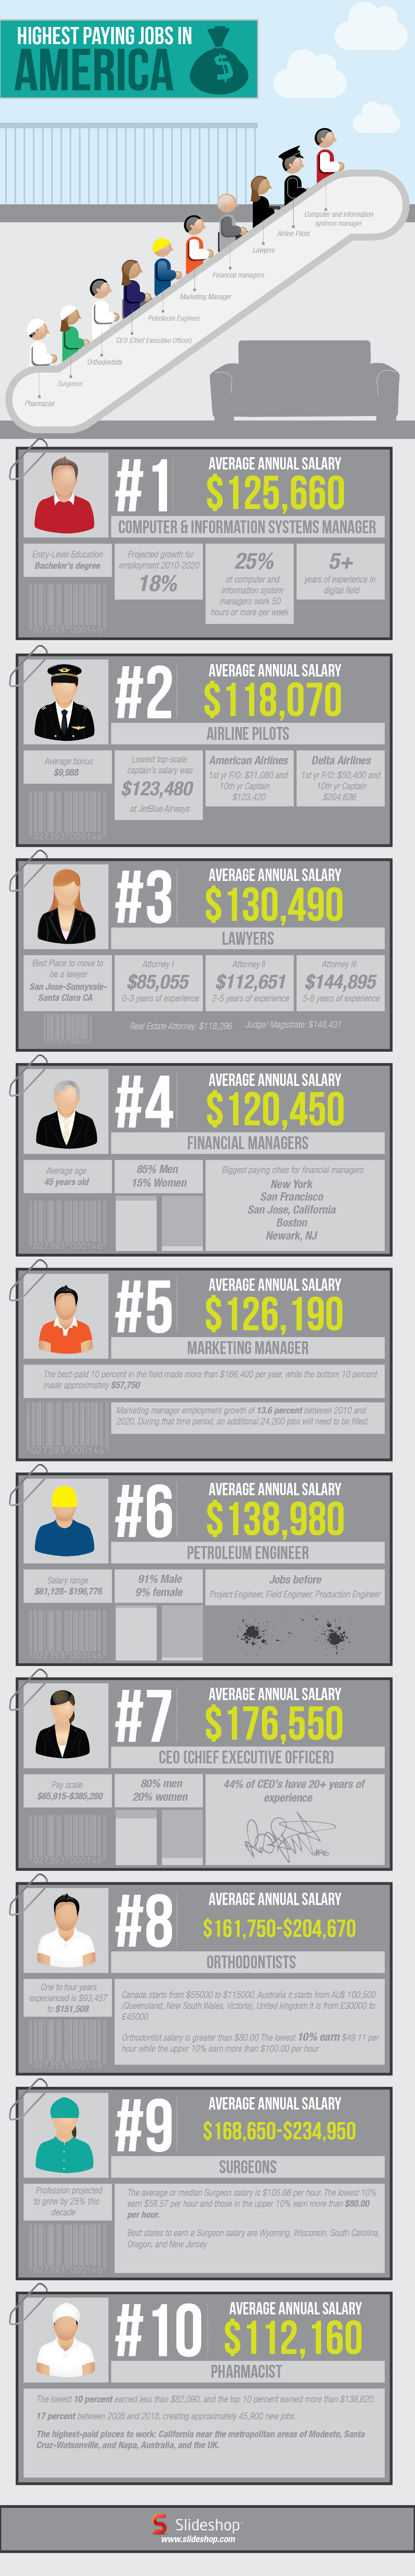 Highest Paying Jobs in US